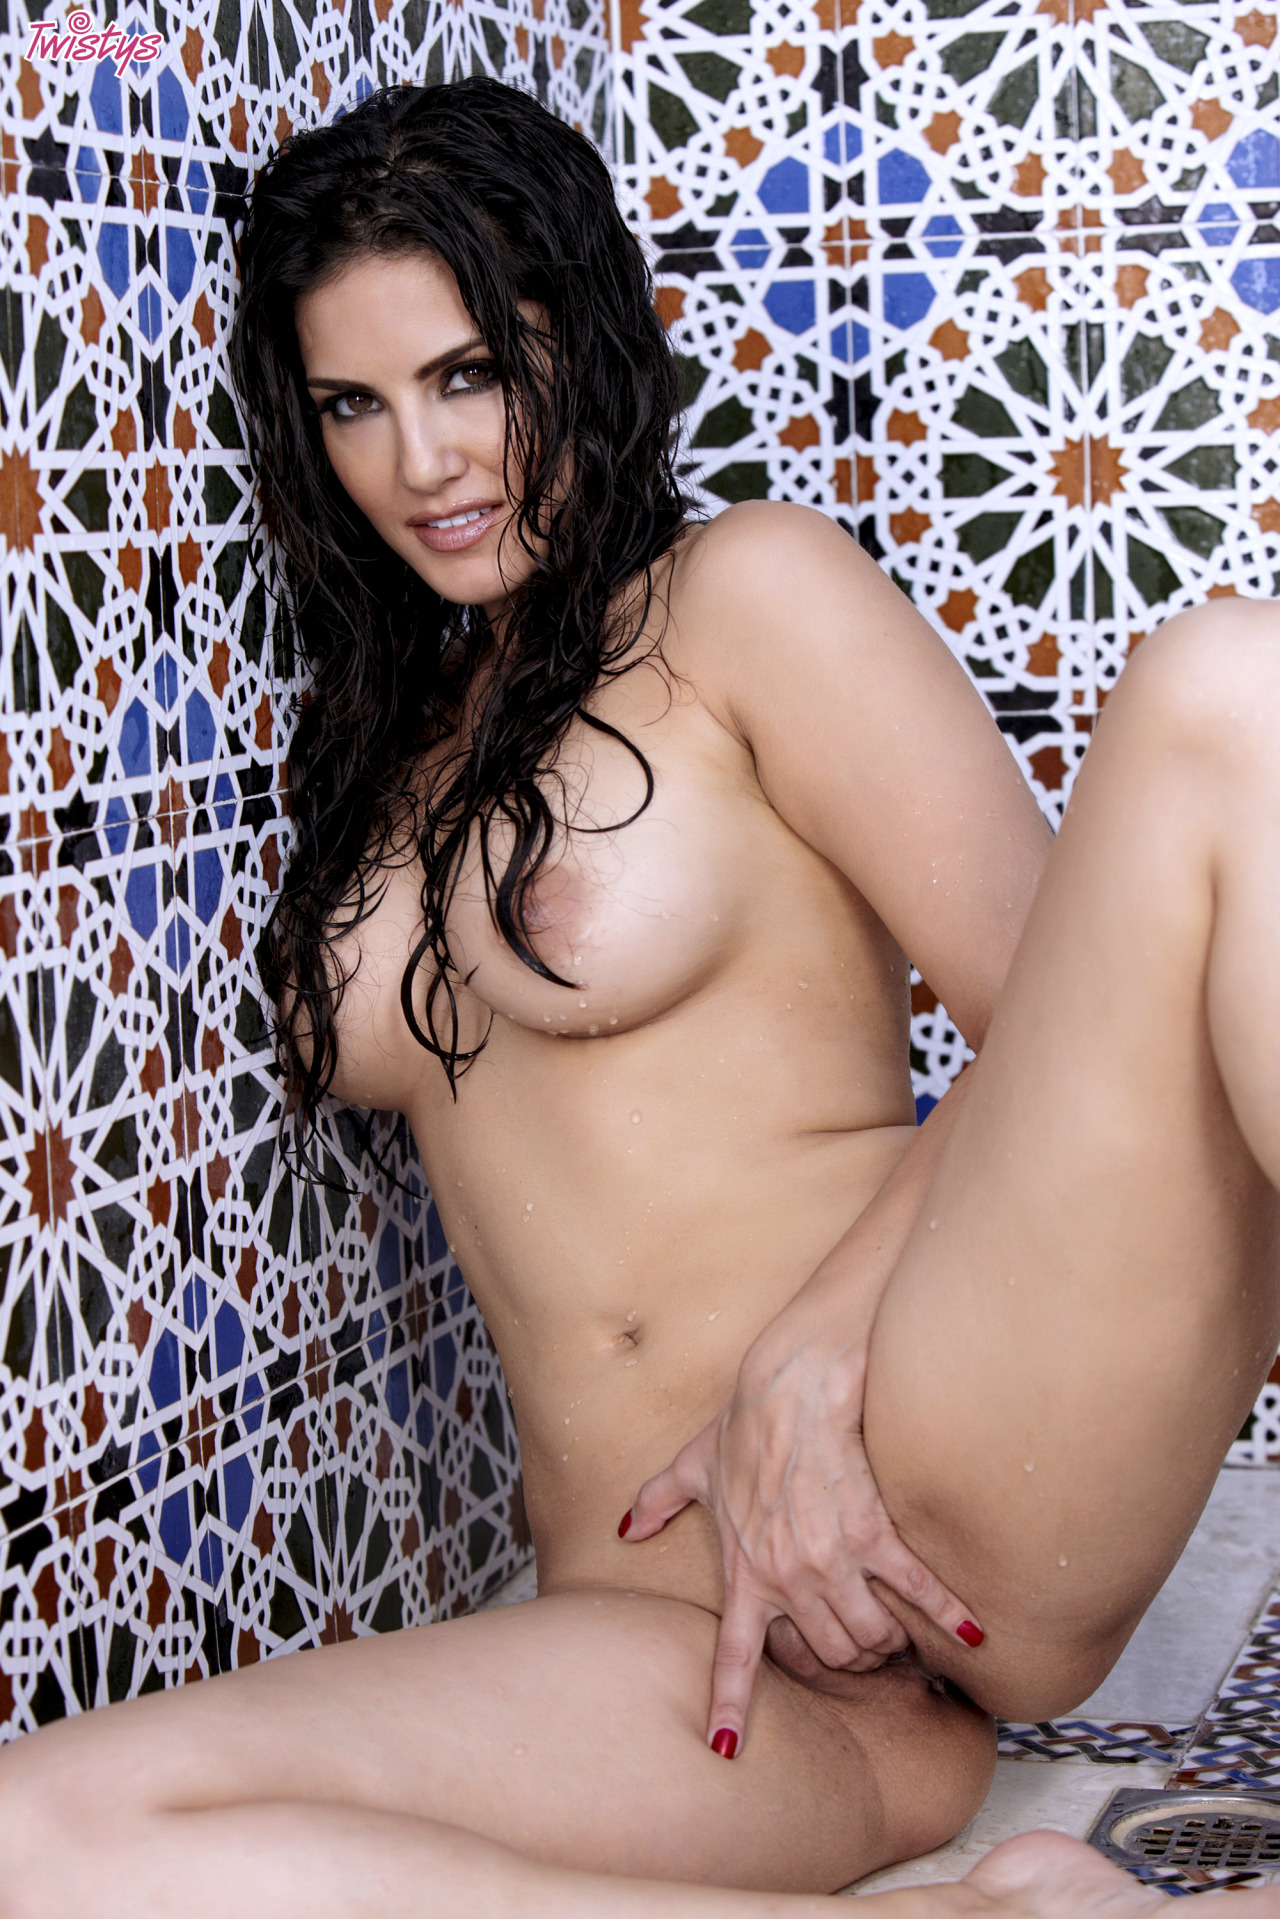 Sunny Leone Getting Wet N Wild In The Shower 10